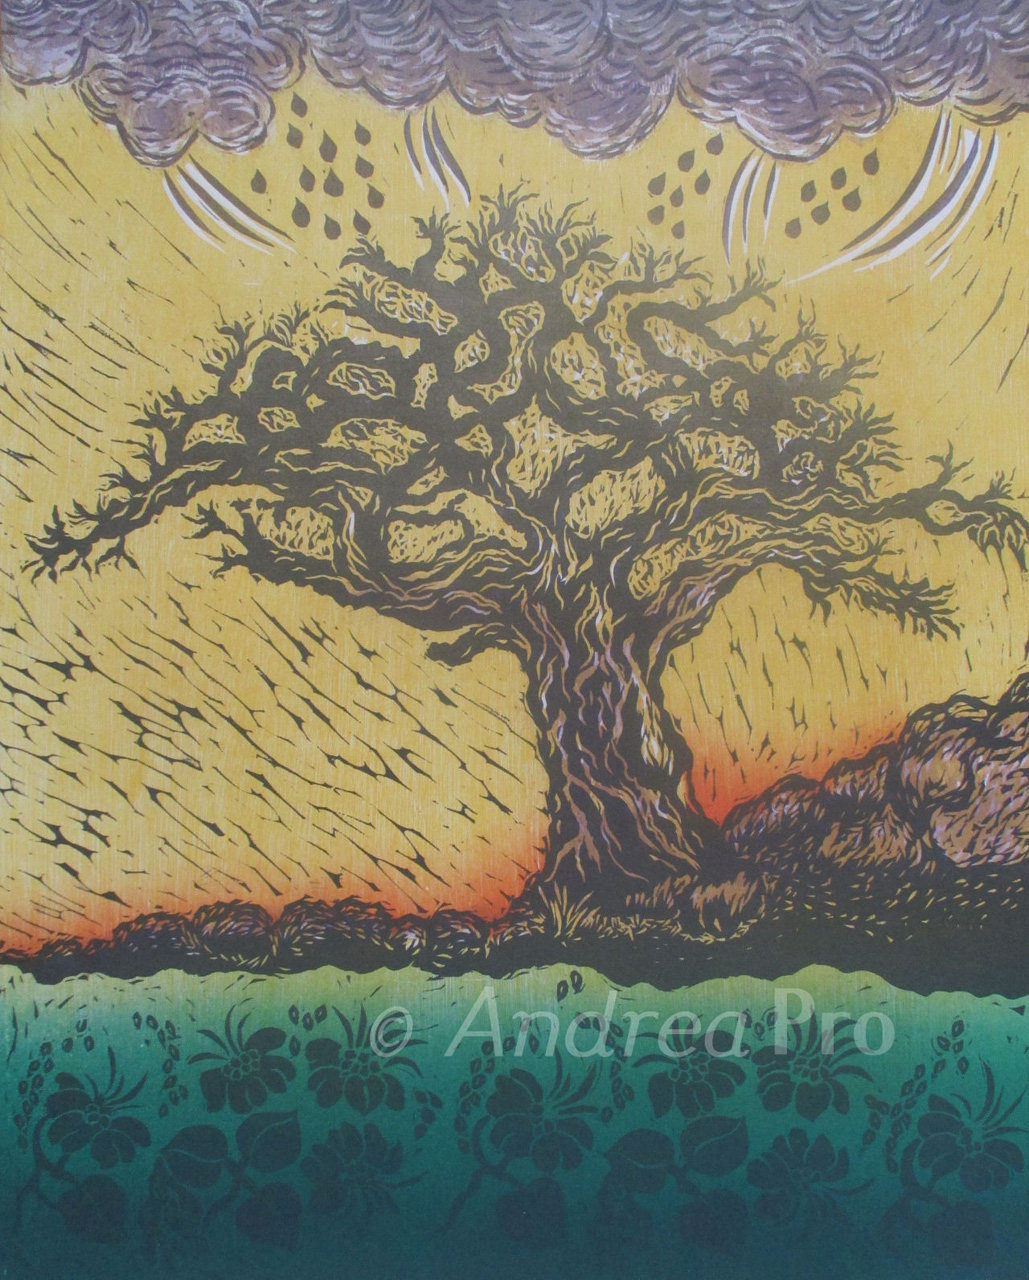 Calling the Rain by Andrea Pro print of tree in rain